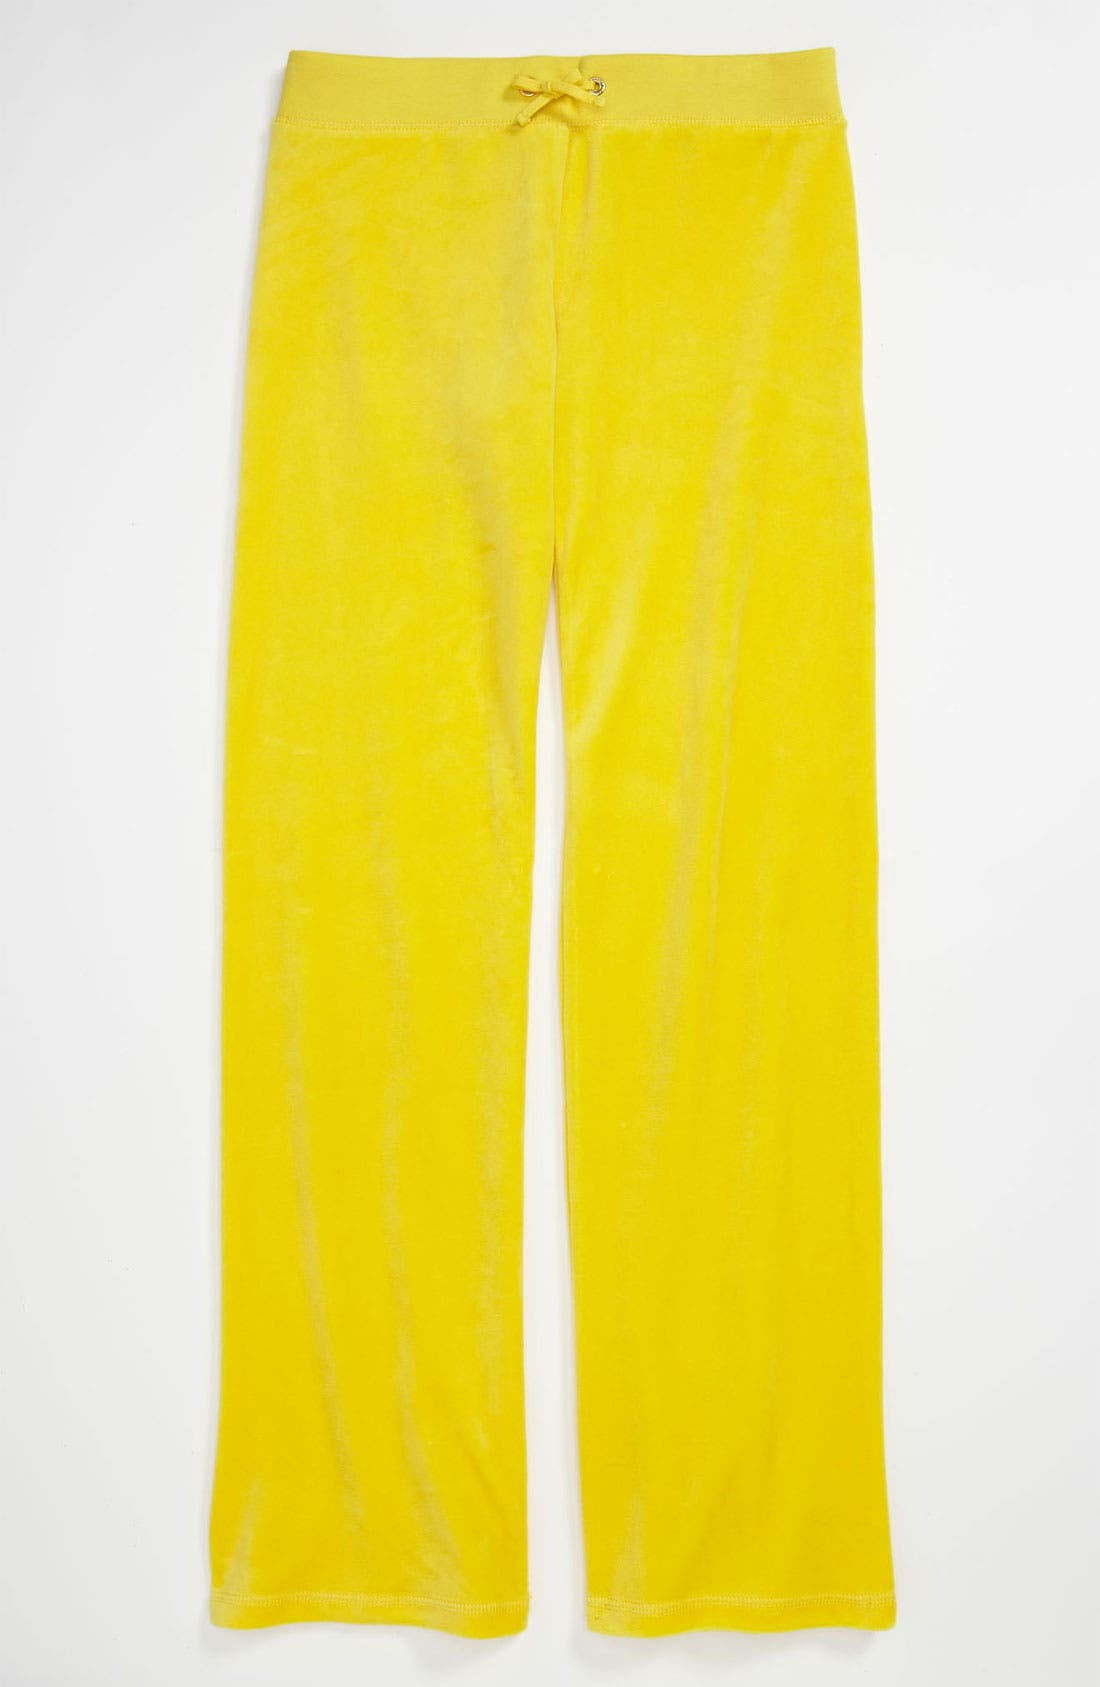 Alternate Image 1 Selected - Juicy Couture 'Basic' Velour Pants (Little Girls & Big Girls)